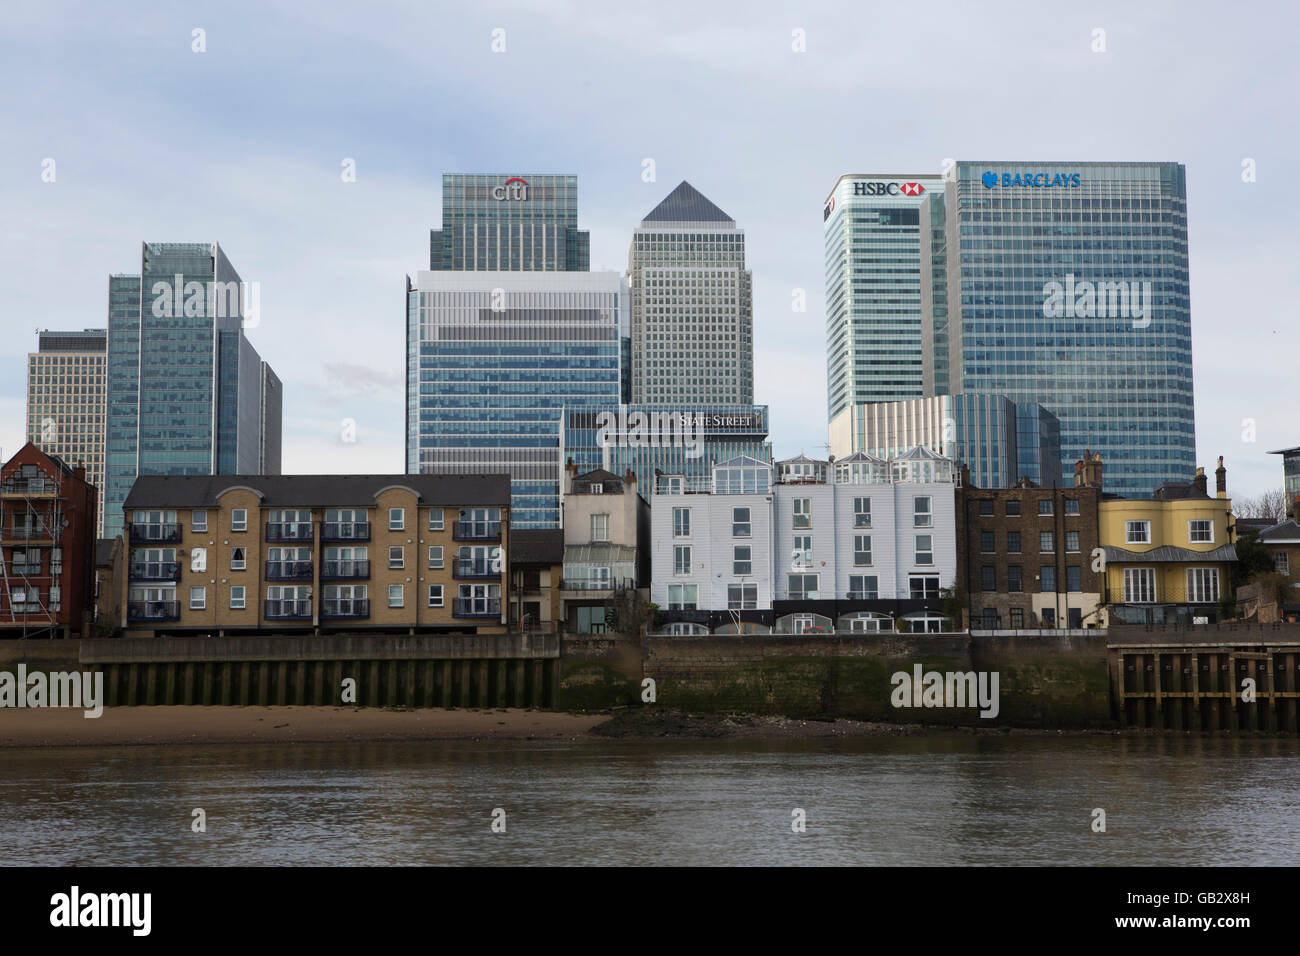 Skyscrapers at Canary Wharf in London, England. The area is the home to finance companies and investment banks. - Stock Image